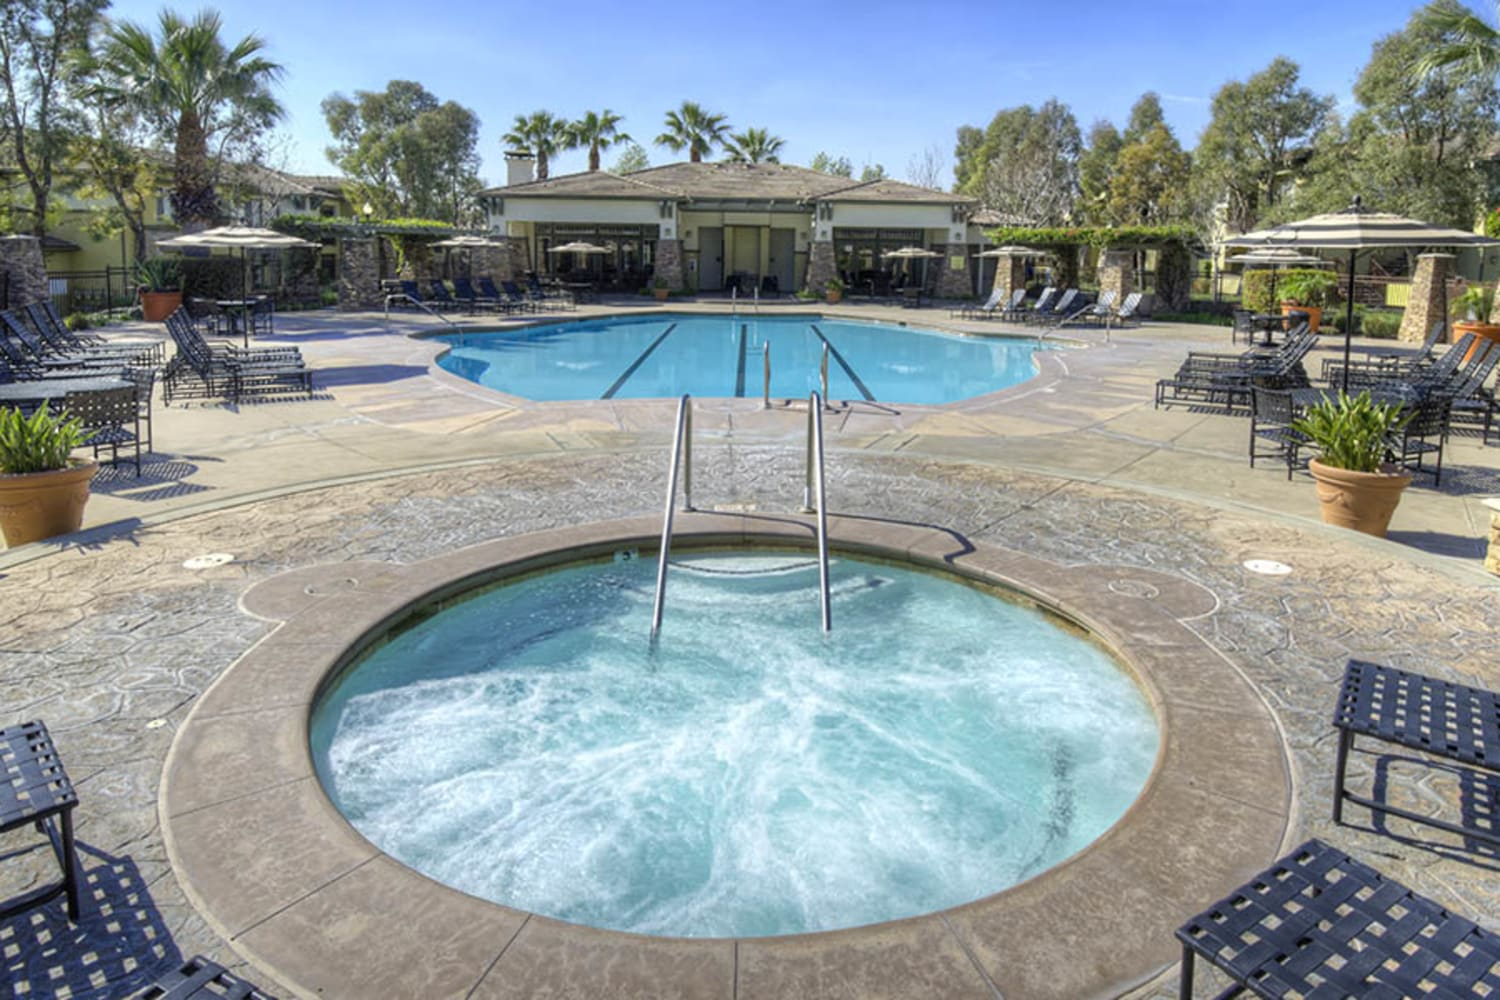 Swimming pool and hot tub at Camino Real in Rancho Cucamonga, California